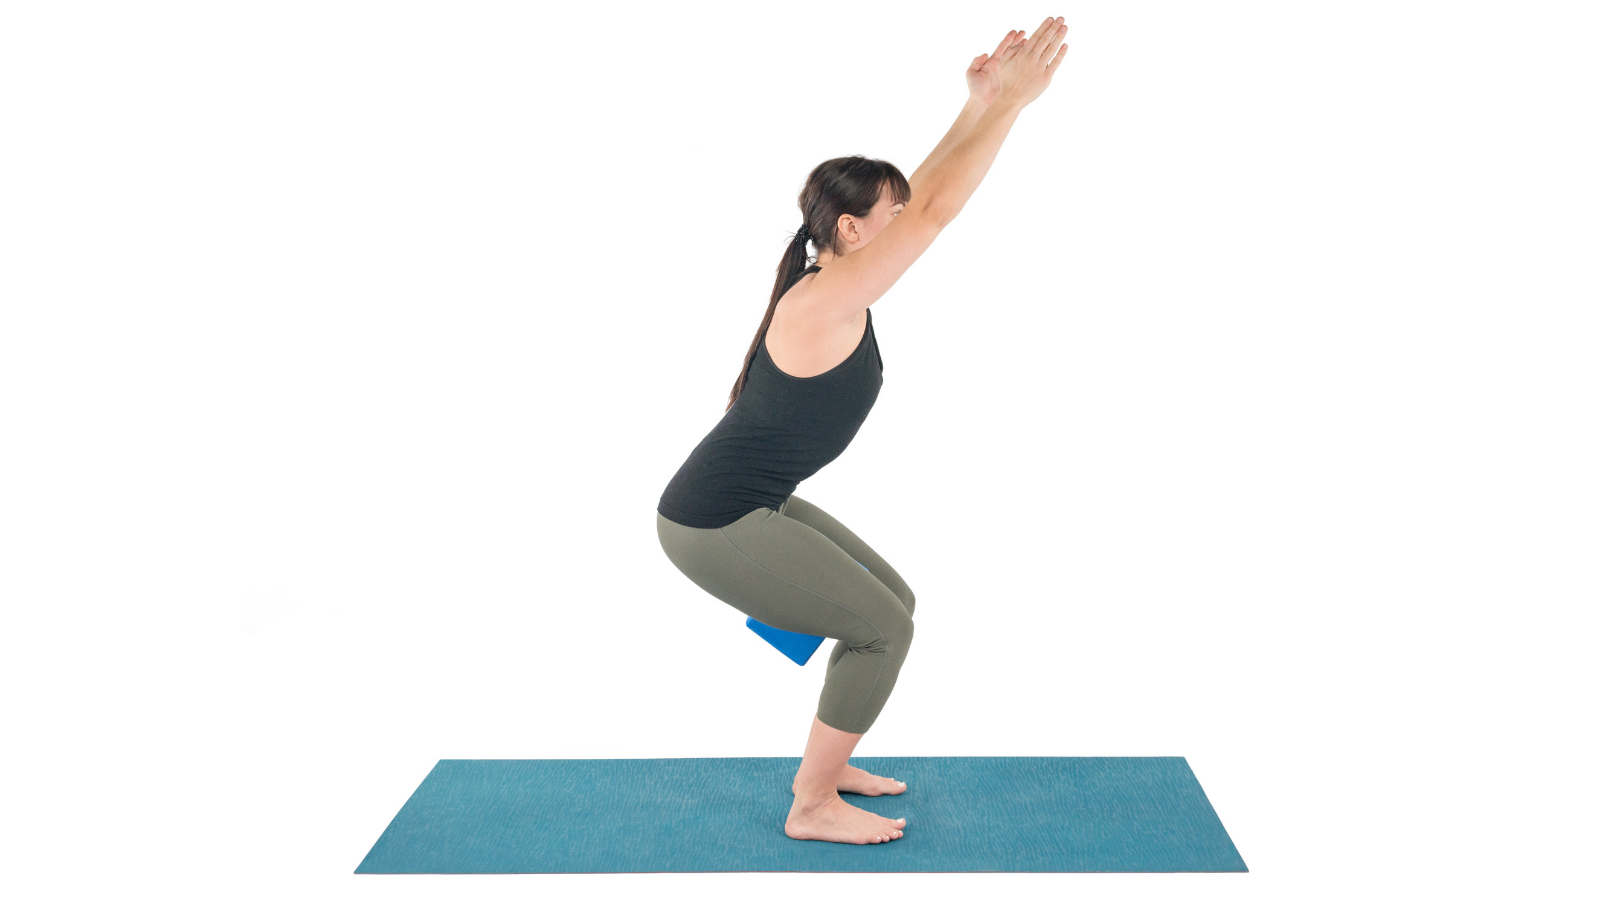 Chair Pose or Utkatasana with a block between the legs for greater strength and stability and pelvic floor health